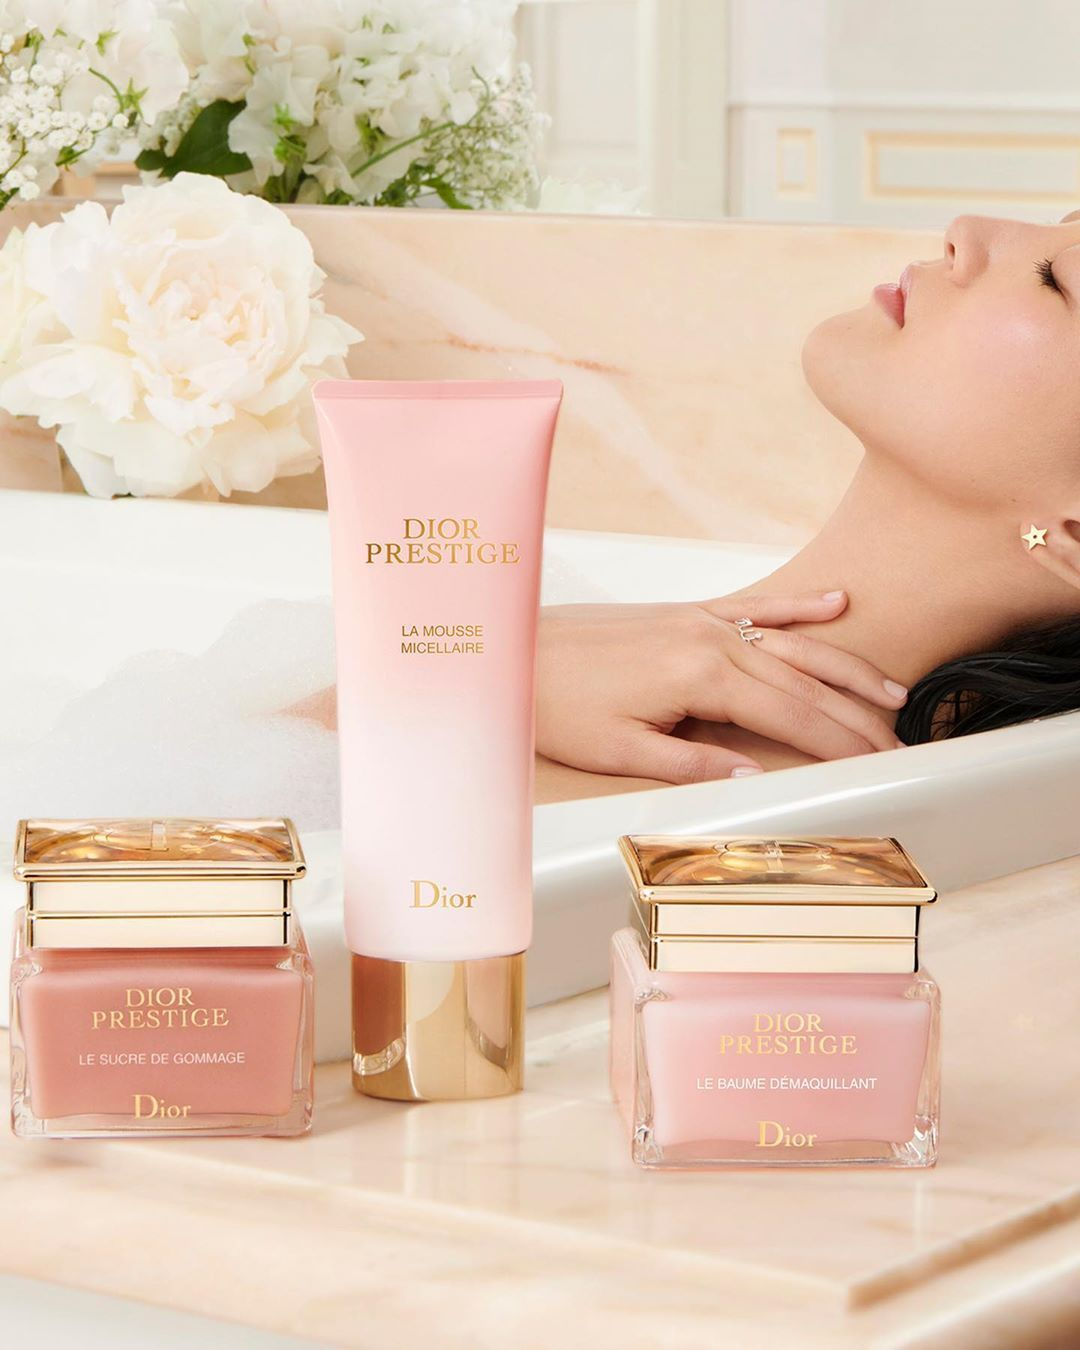 Dior Skincare On Instagram Diorskincare Wedding Rituals After Such An Emotional Moment Enjoy A Deliciously Relaxin In 2021 Dior Skincare Skin Care Brands Skin Care